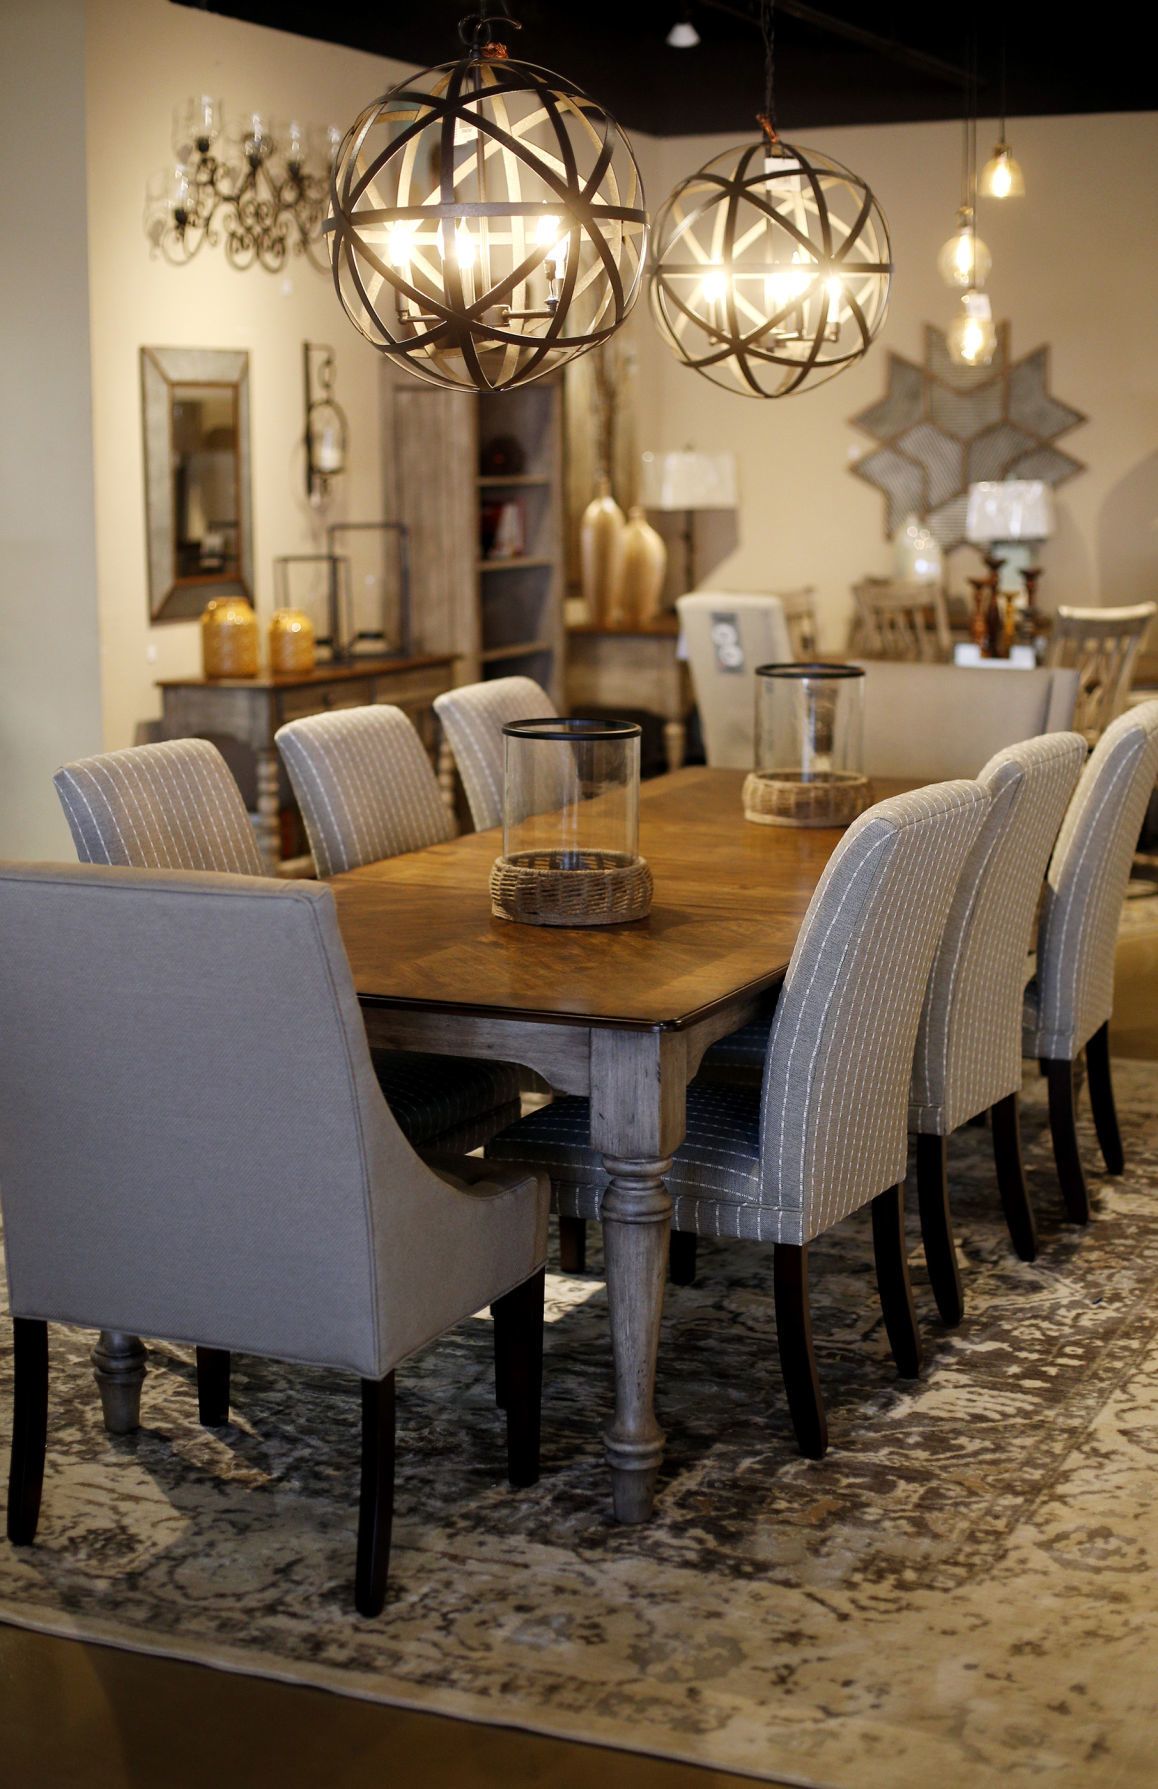 Farmhouse Style Furniture Such As This Dining Table Is A Popular Home Decor Trend And Gray Chairs Make Perfect Match In Neutral Tone